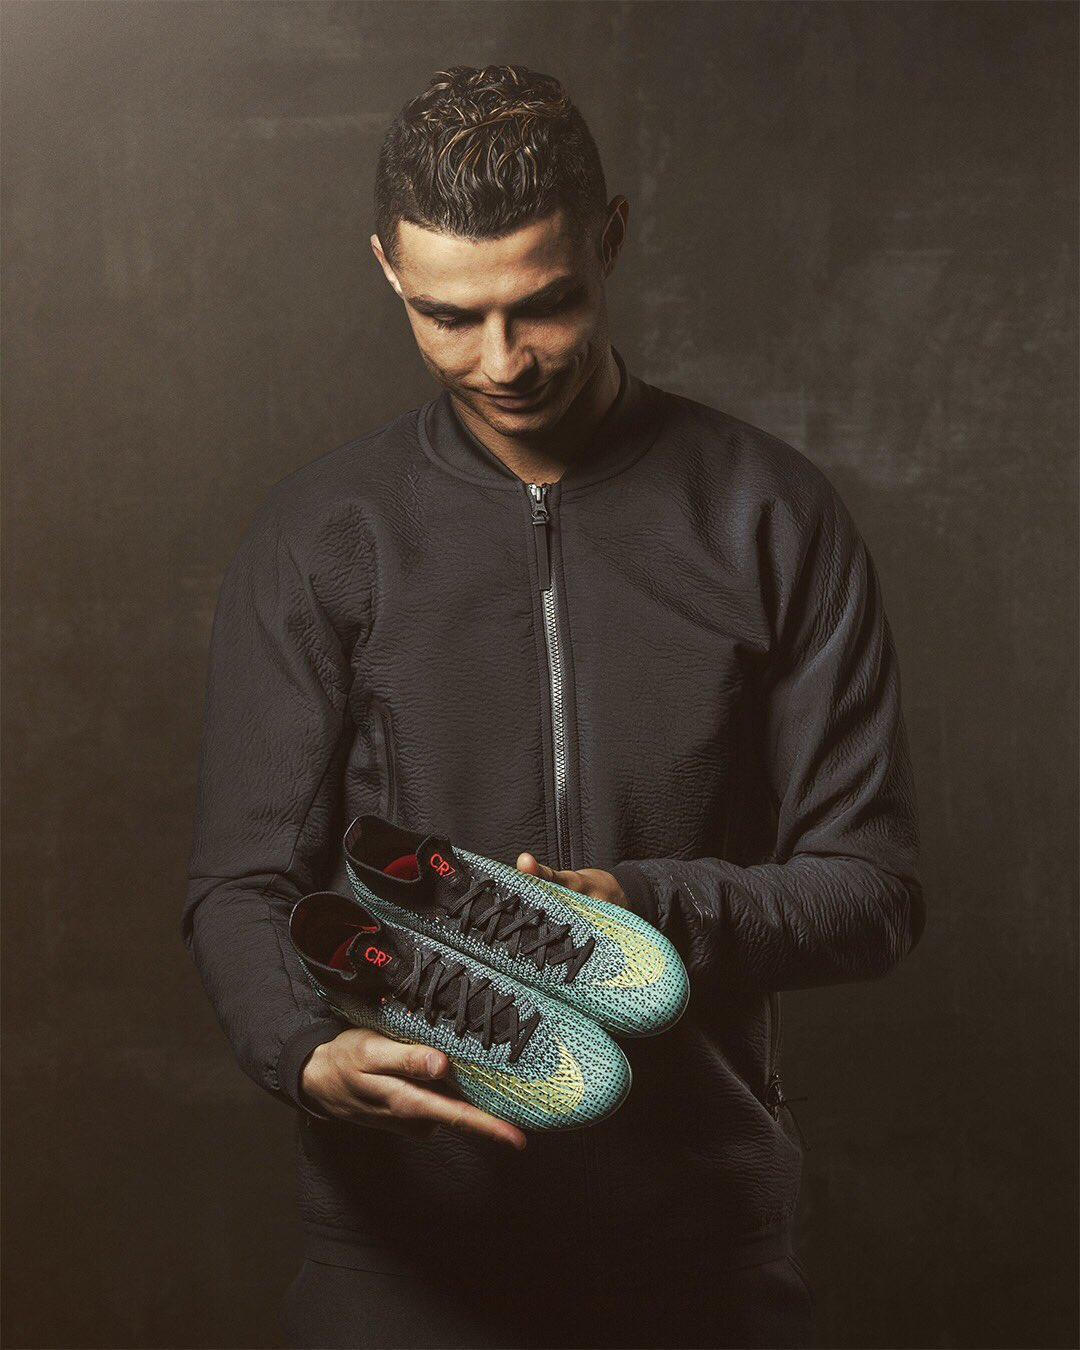 The perfect boot for my biggest matches. ⚽ �� Get yours on https://t.co/Td9BJOXwaj. #Mercurial #Nikefootball https://t.co/yU9dTFXuHo